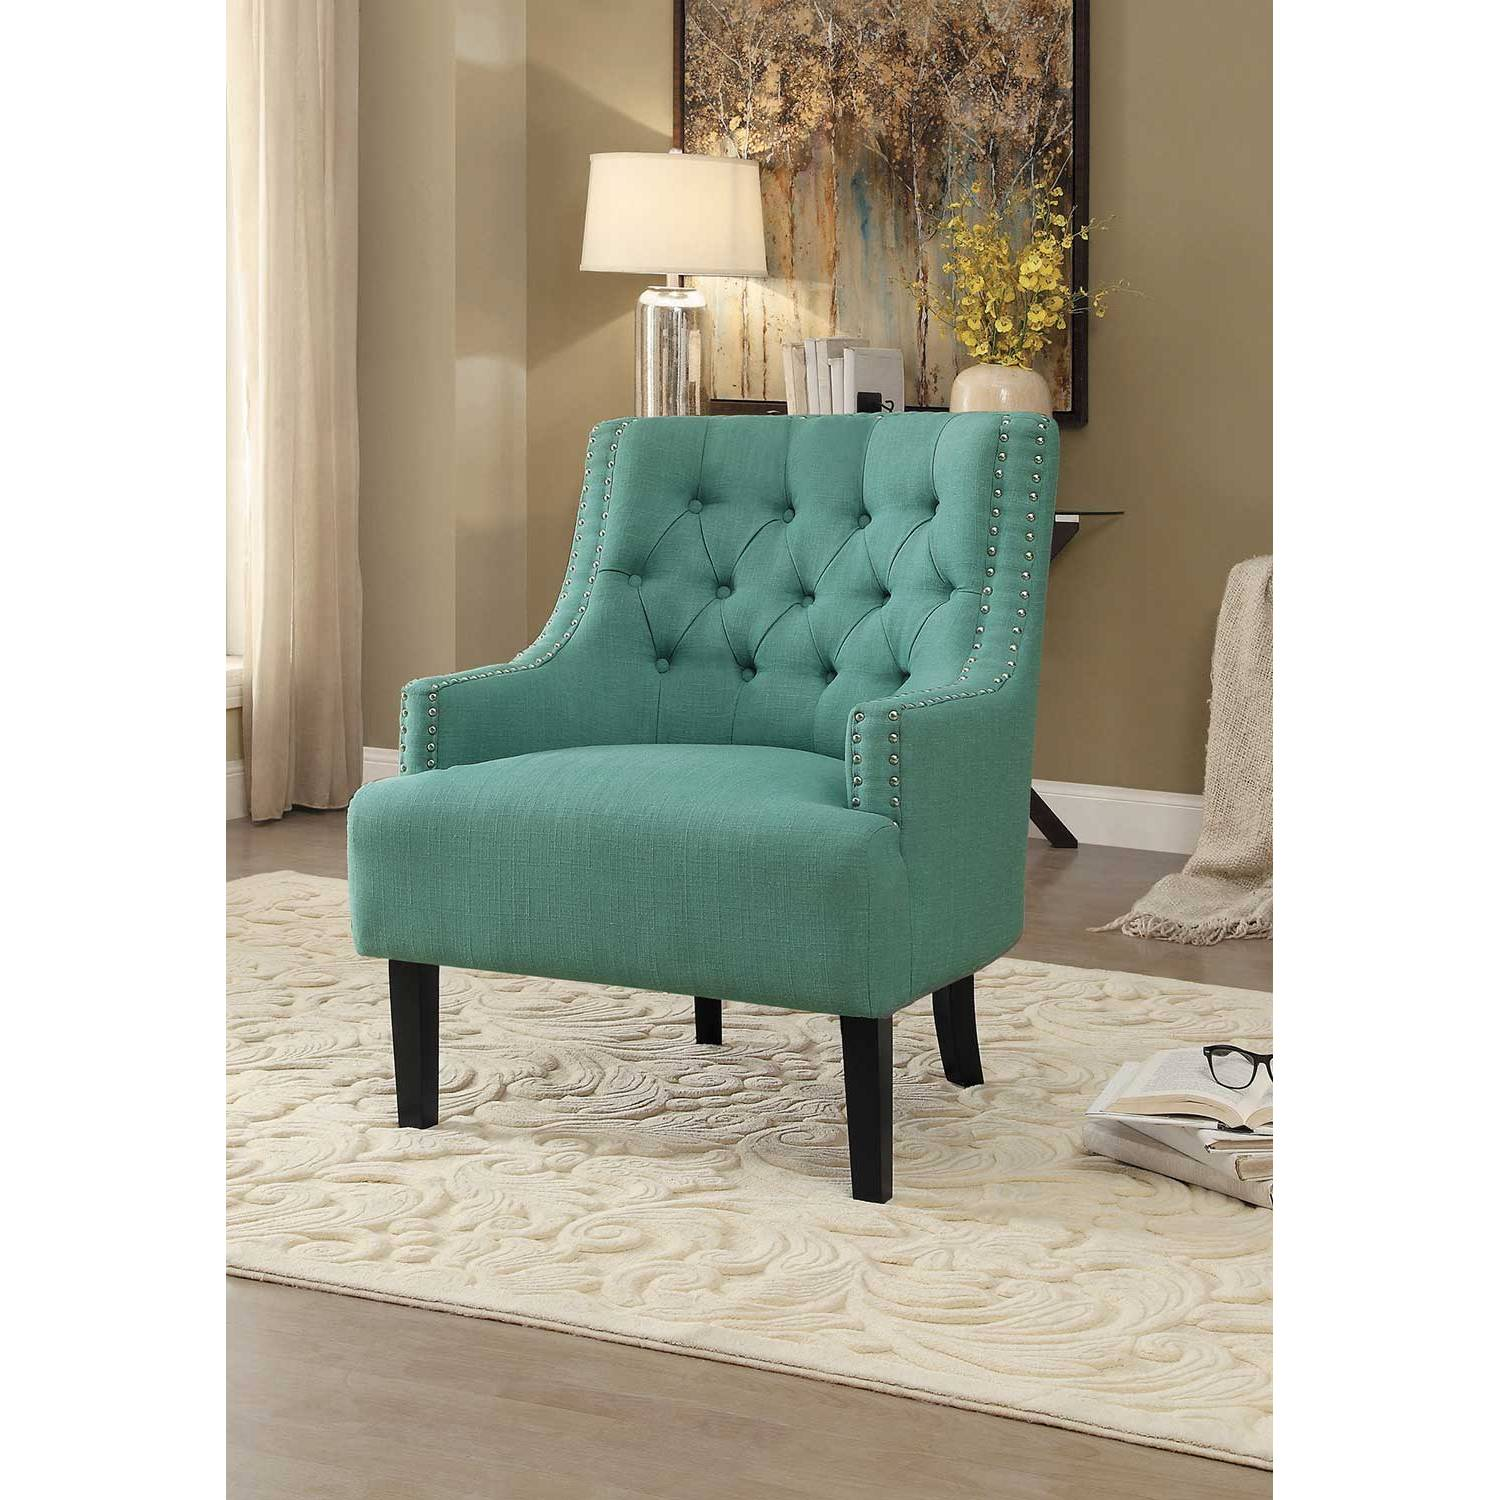 Peachy Charisma Accent Chair Teal 1194Tl Creativecarmelina Interior Chair Design Creativecarmelinacom